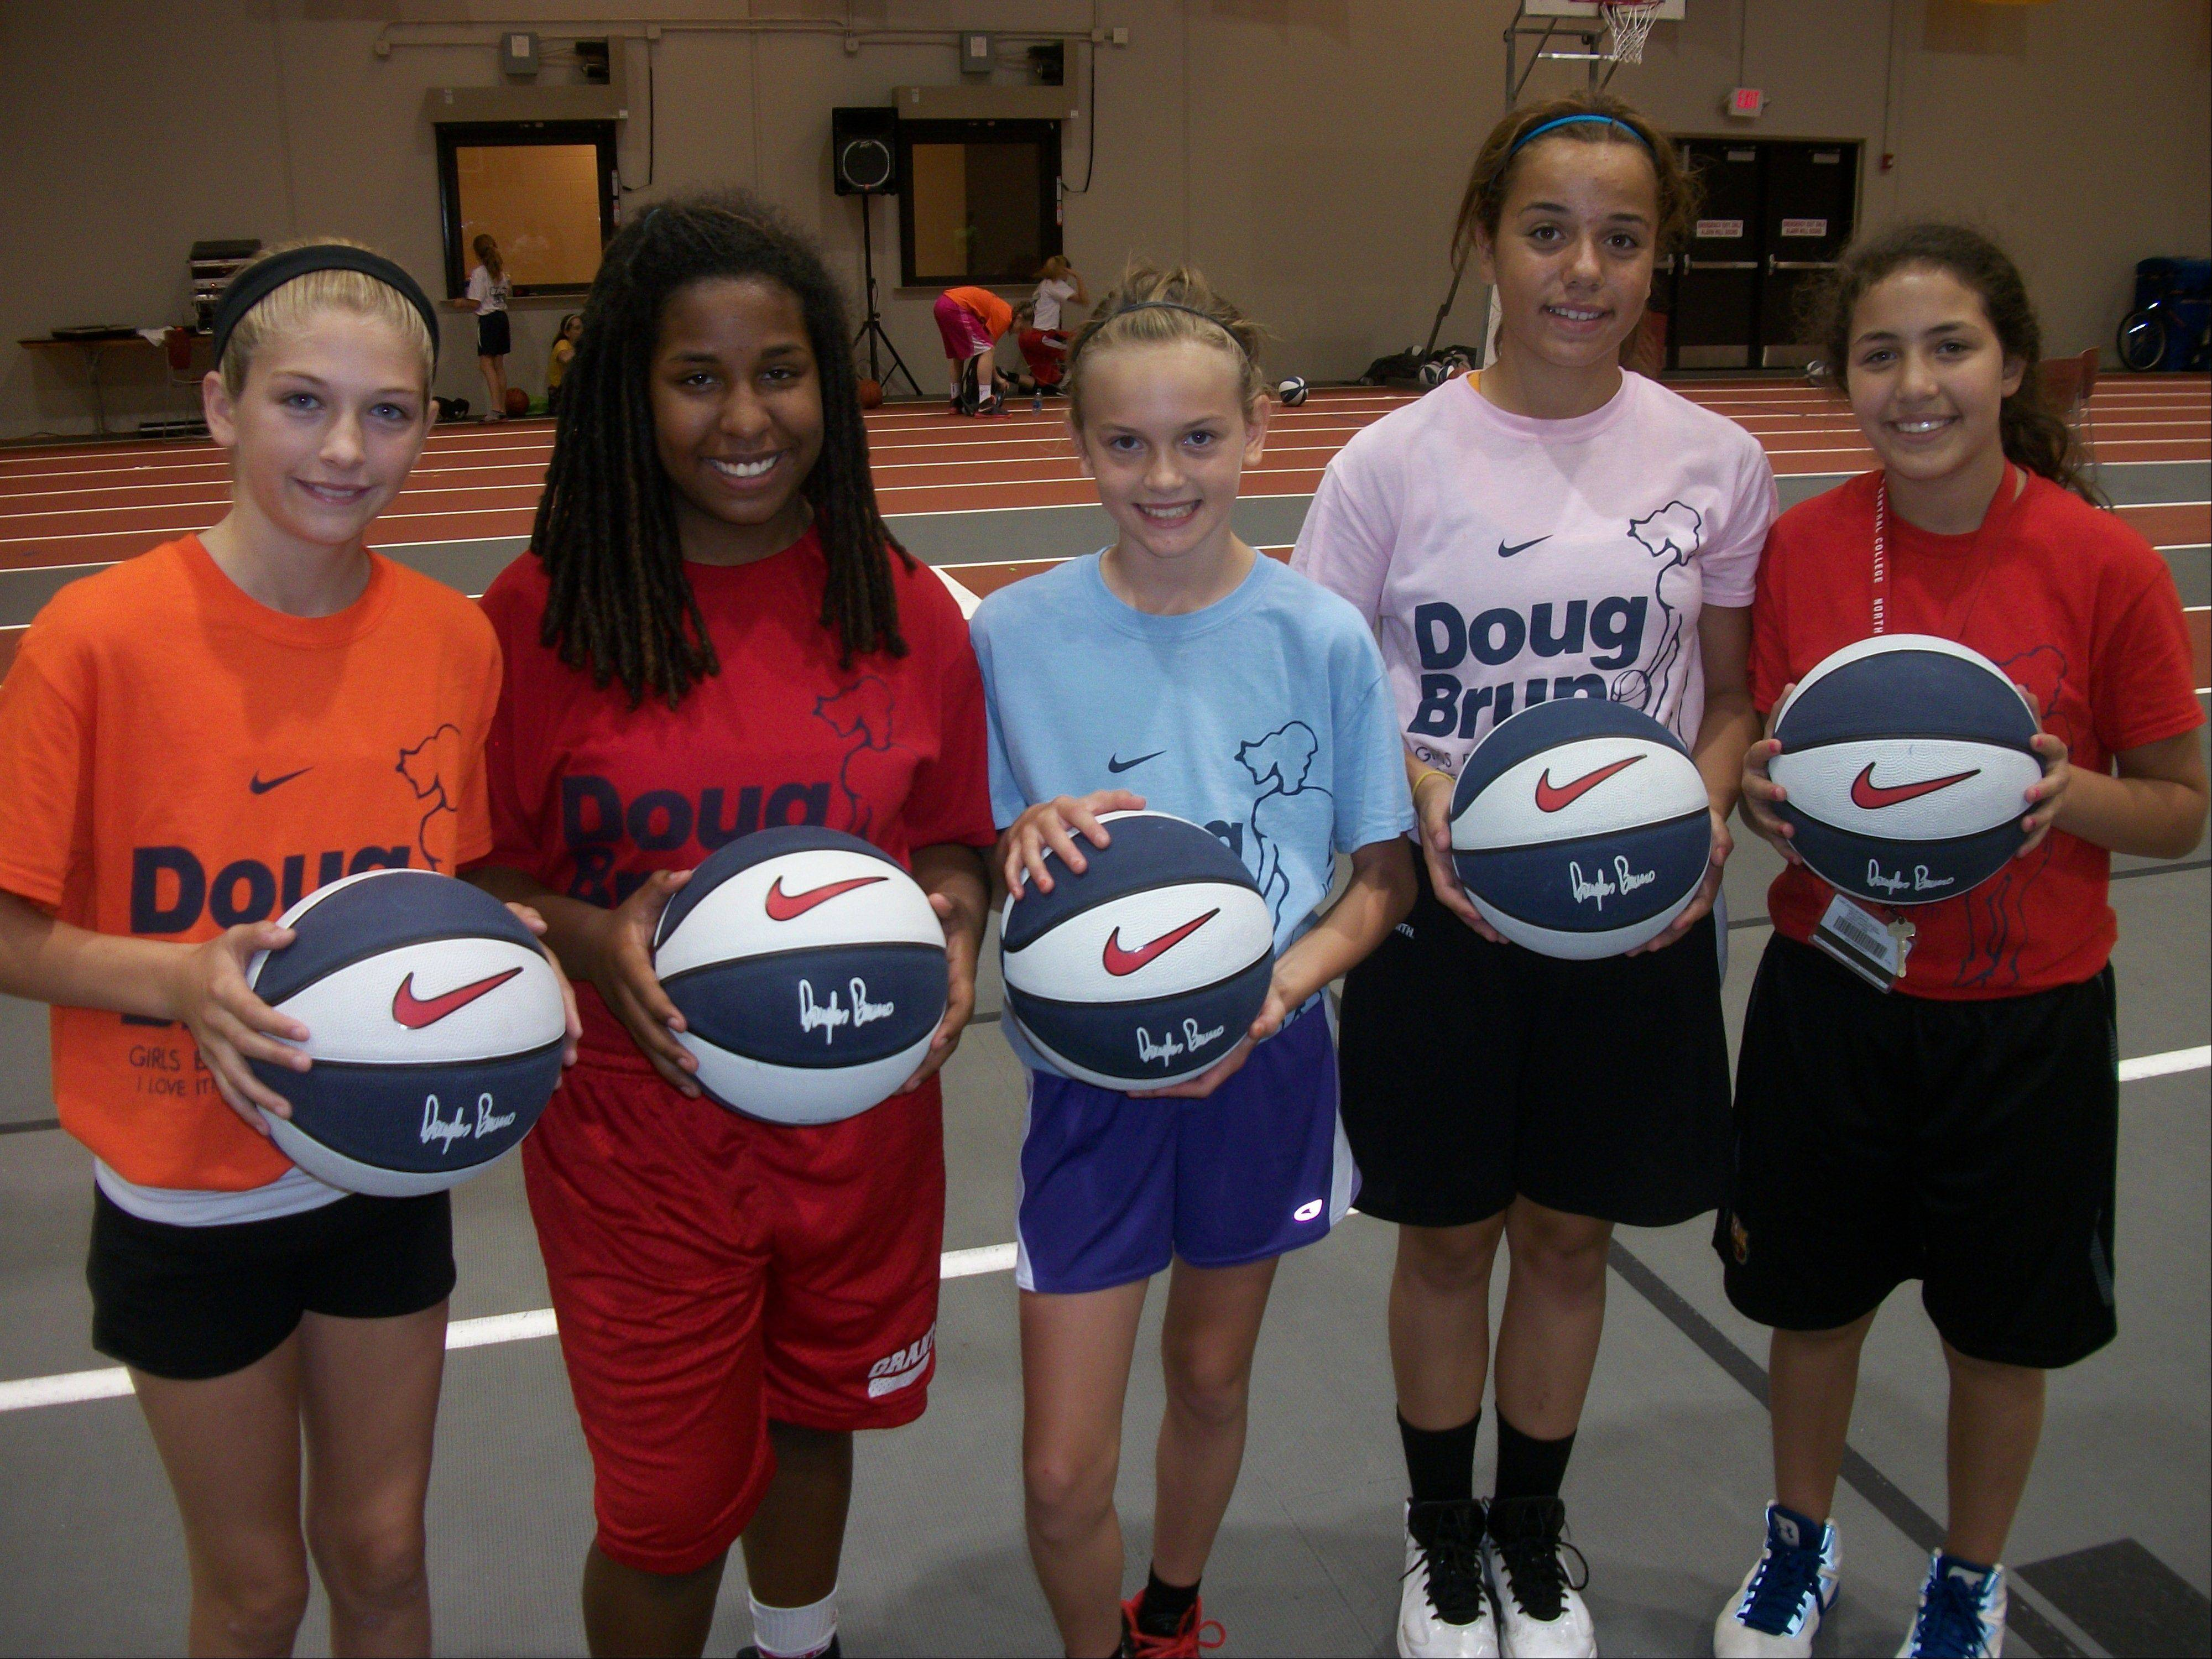 Enjoying their experience at Doug Bruno�s basketball camp this summer were, from left, Brooke Karpinske, Liz Schram, Kelsey McGraw, Gabby Rogalovich and Mercedes Uribe.